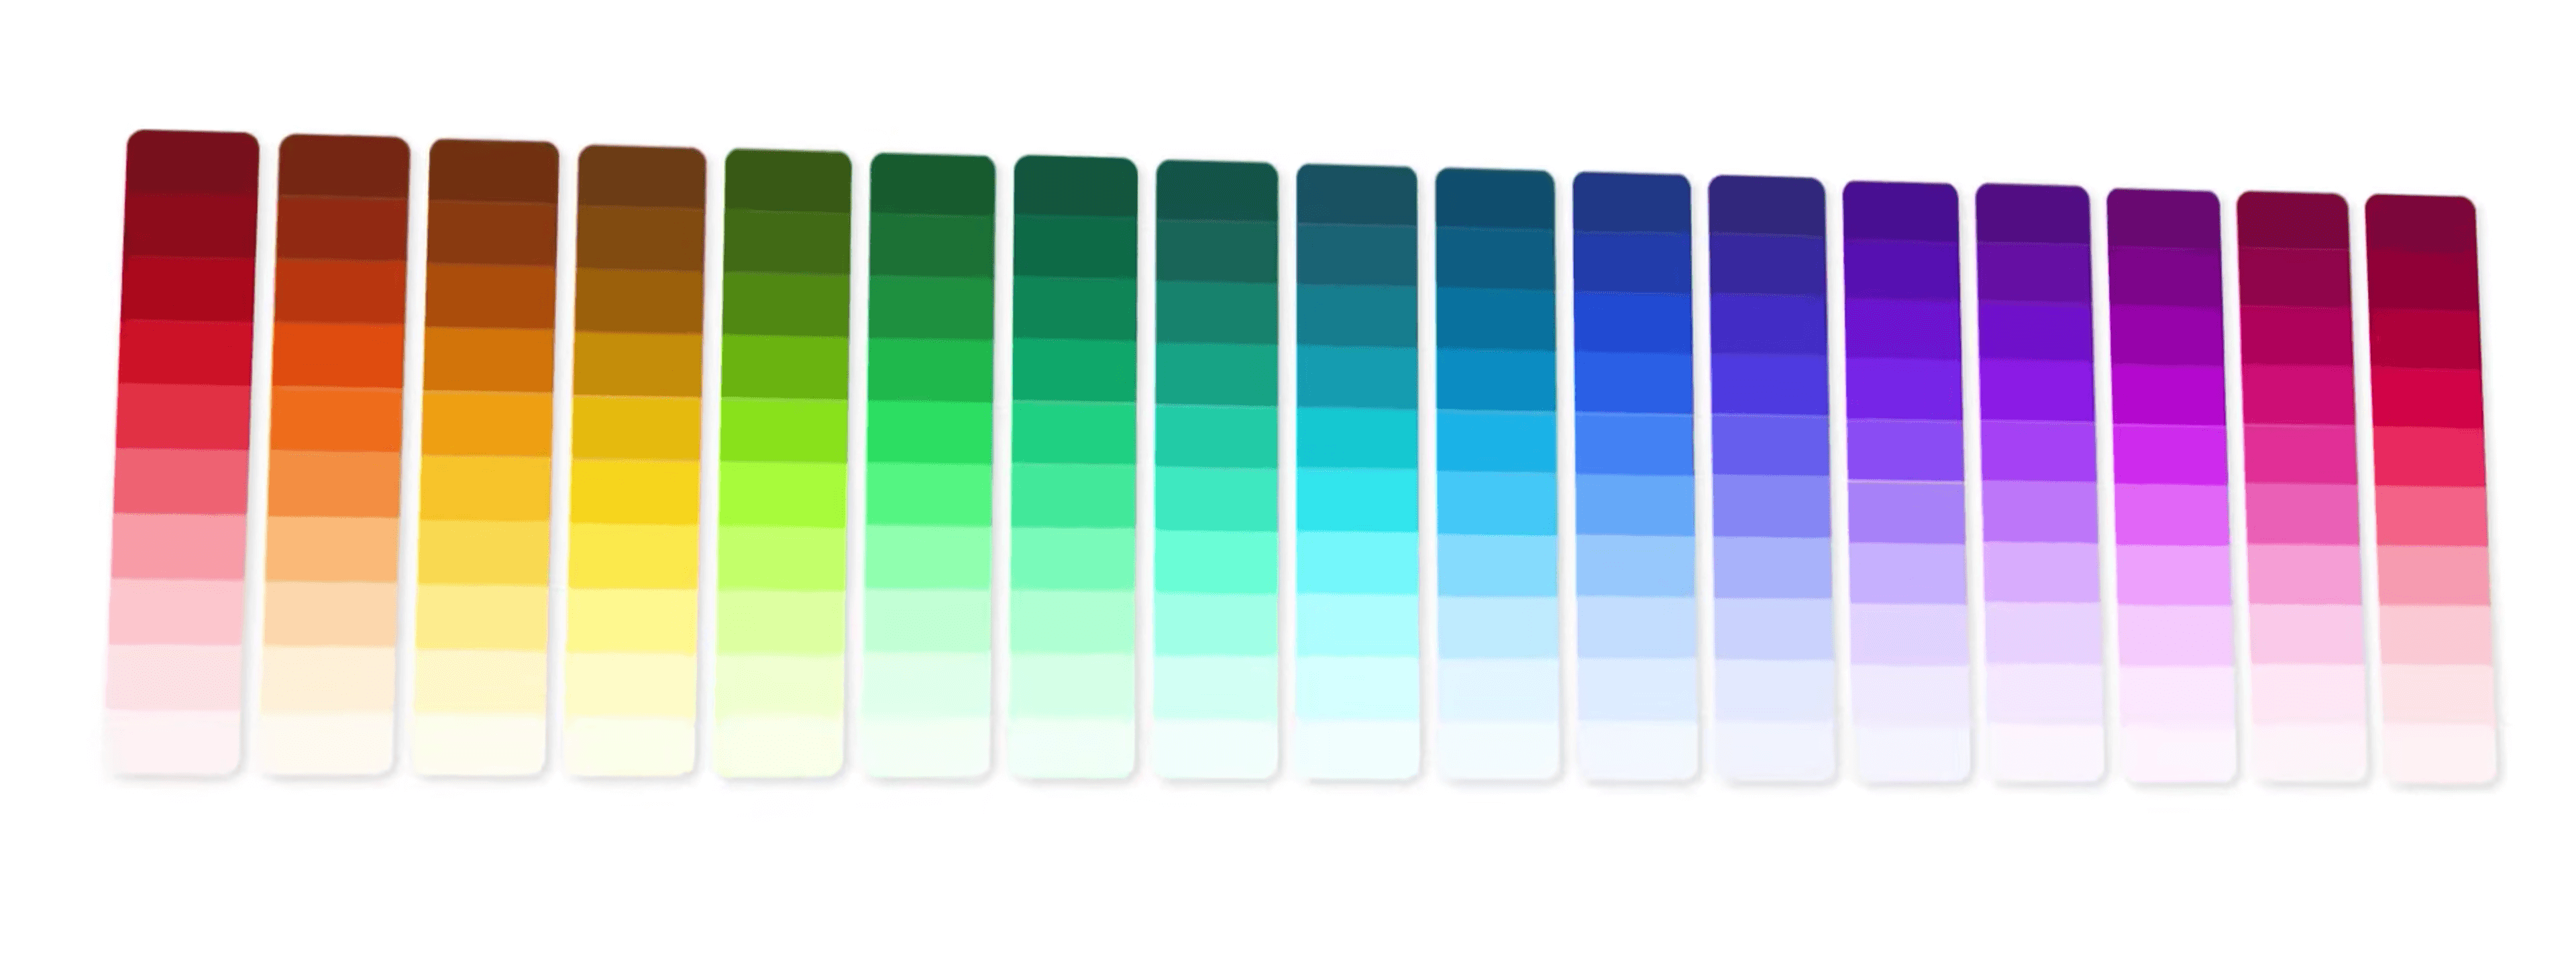 extended-colors.png